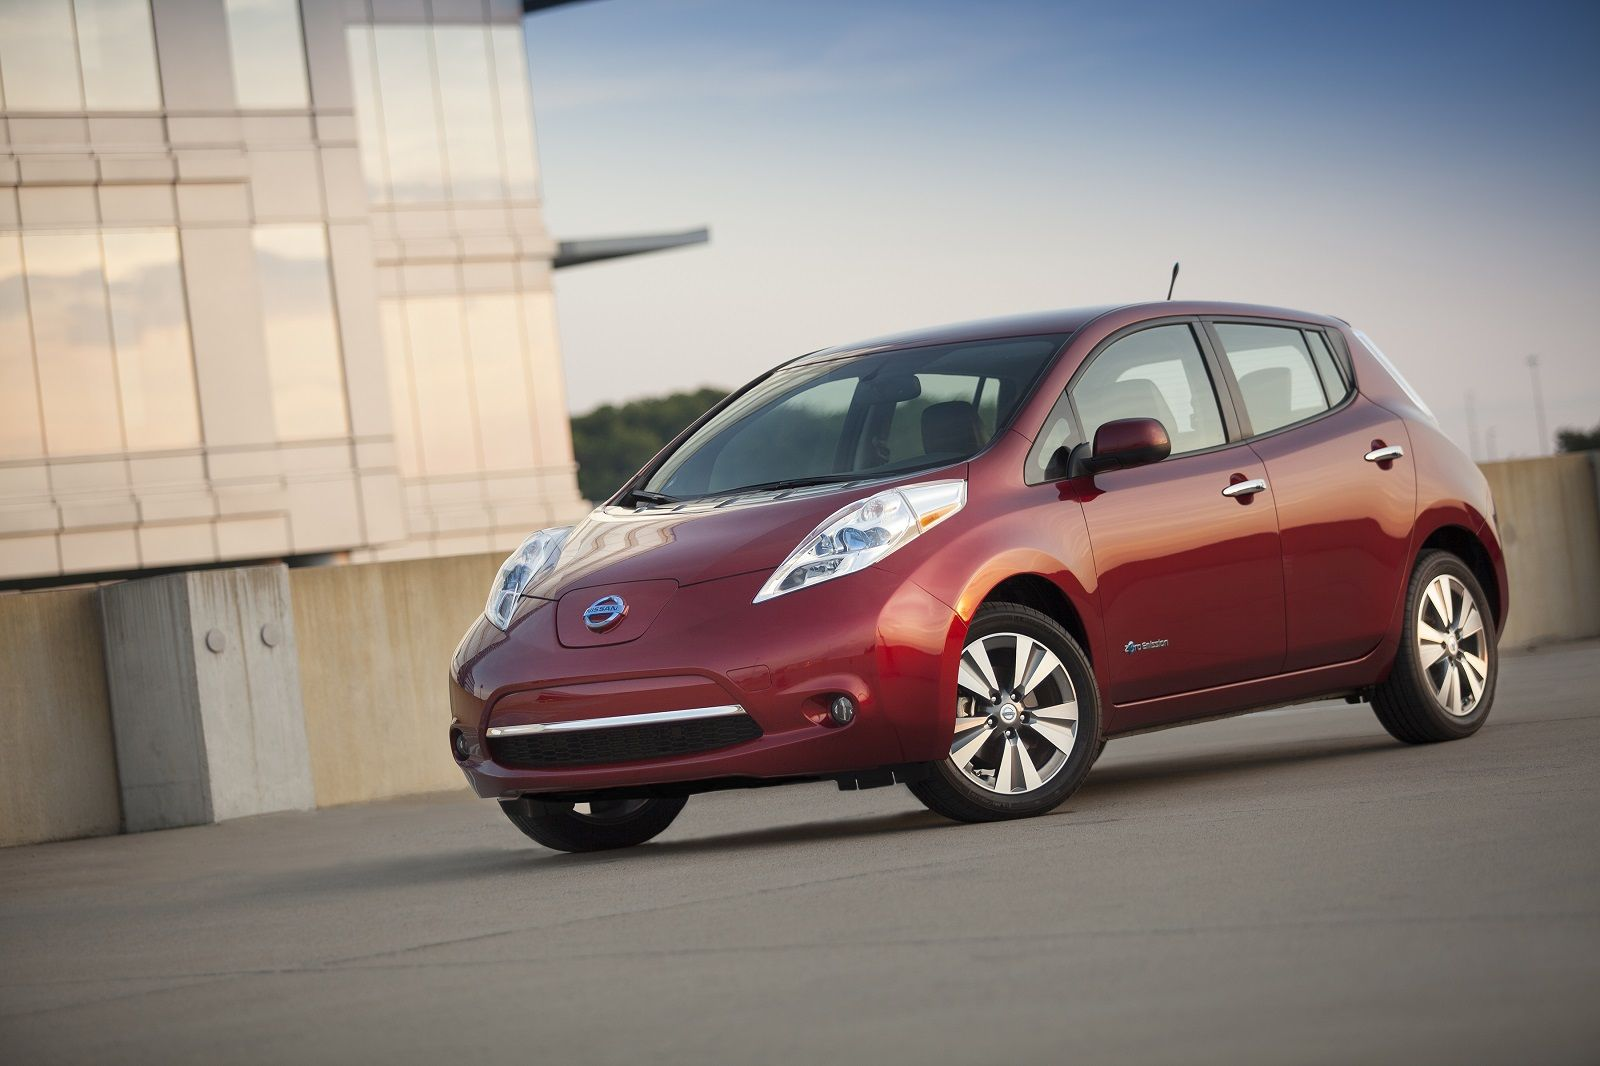 Chevy Volt Nissan Leaf Ready Second Acts Video Nissan Leaf Chevy Volt Electric Cars